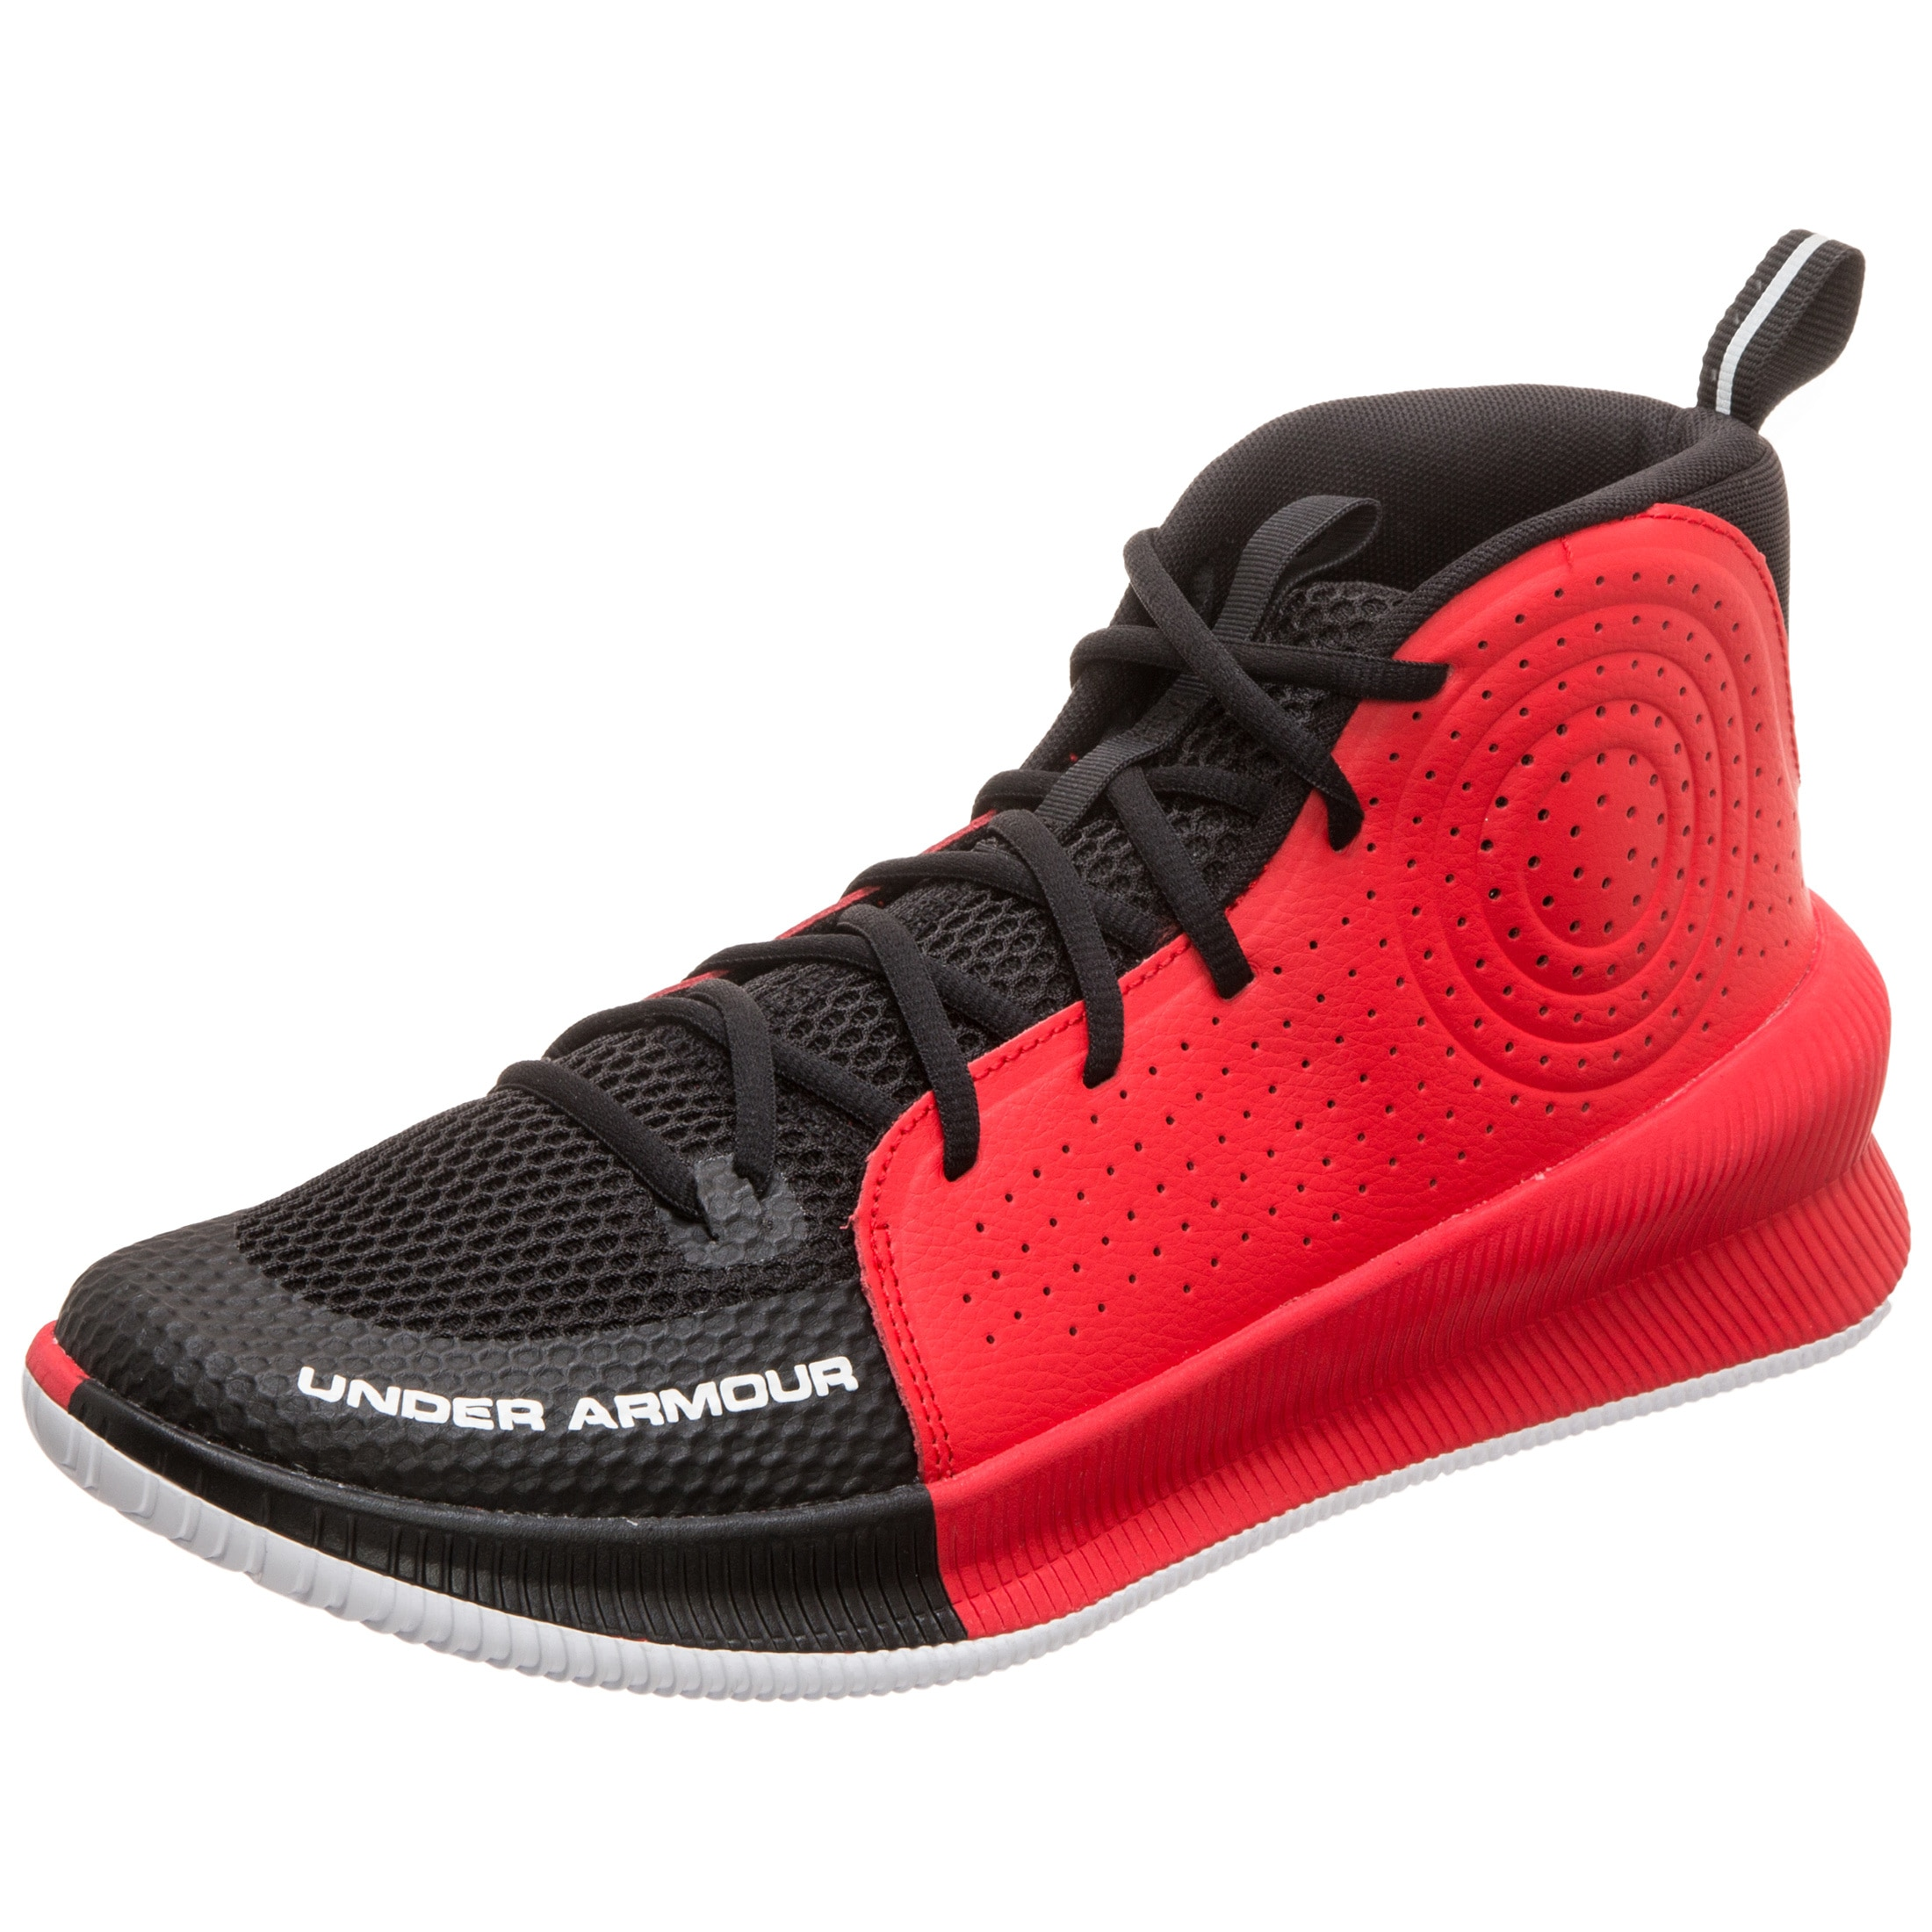 Image of Under Armour® Basketballschuh »Jet«